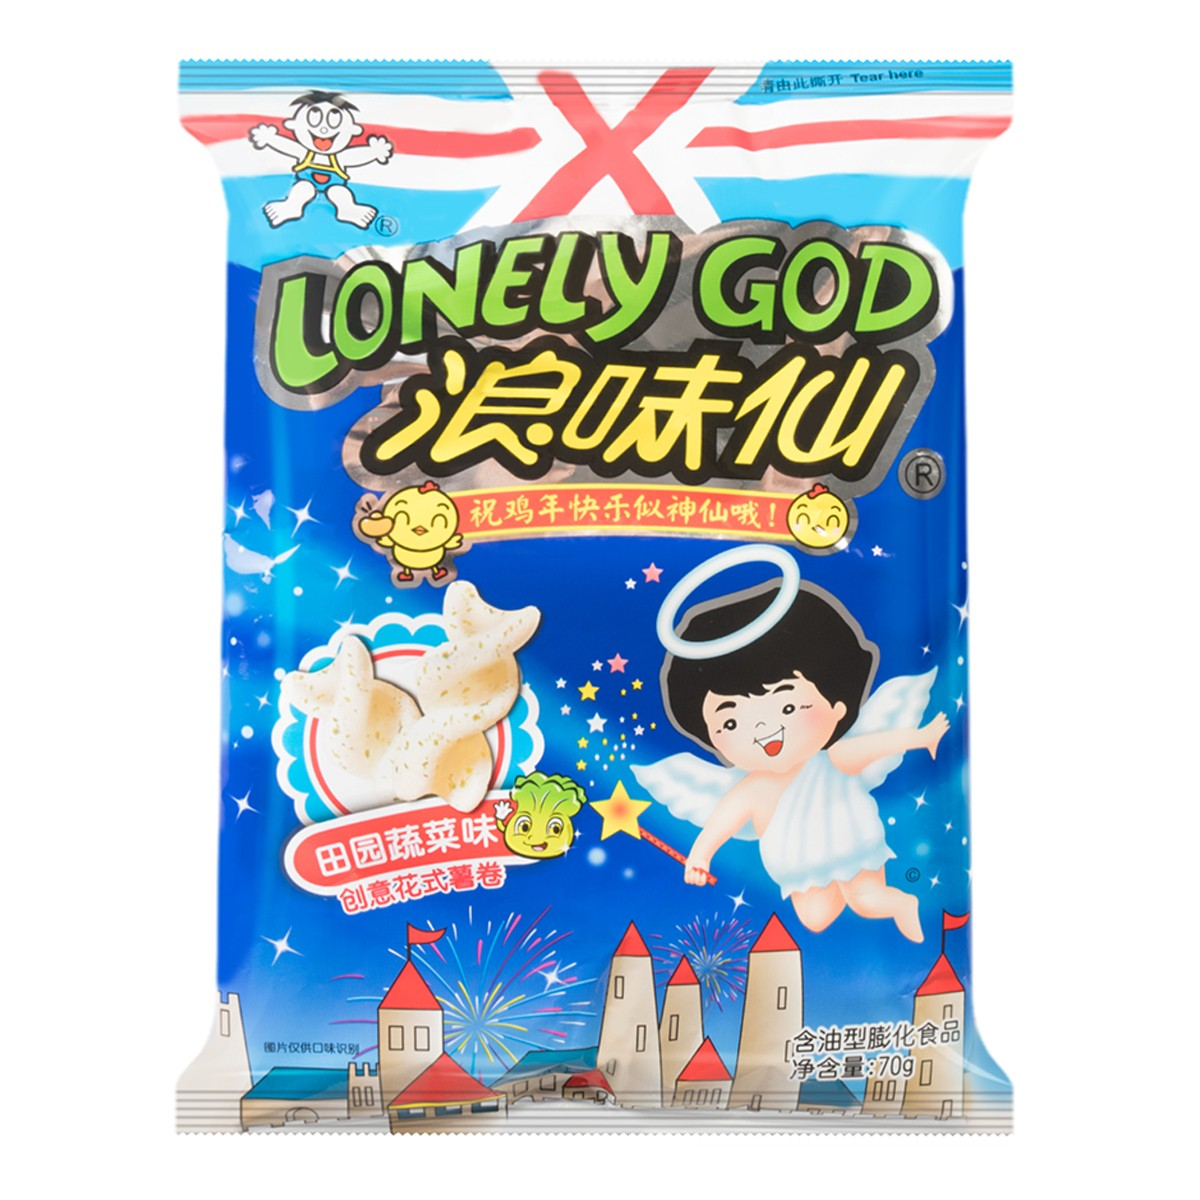 Yamibuy.com:Customer reviews:WANT WANT LONELY GOD Vegetable Flavor Potato Twists 70g